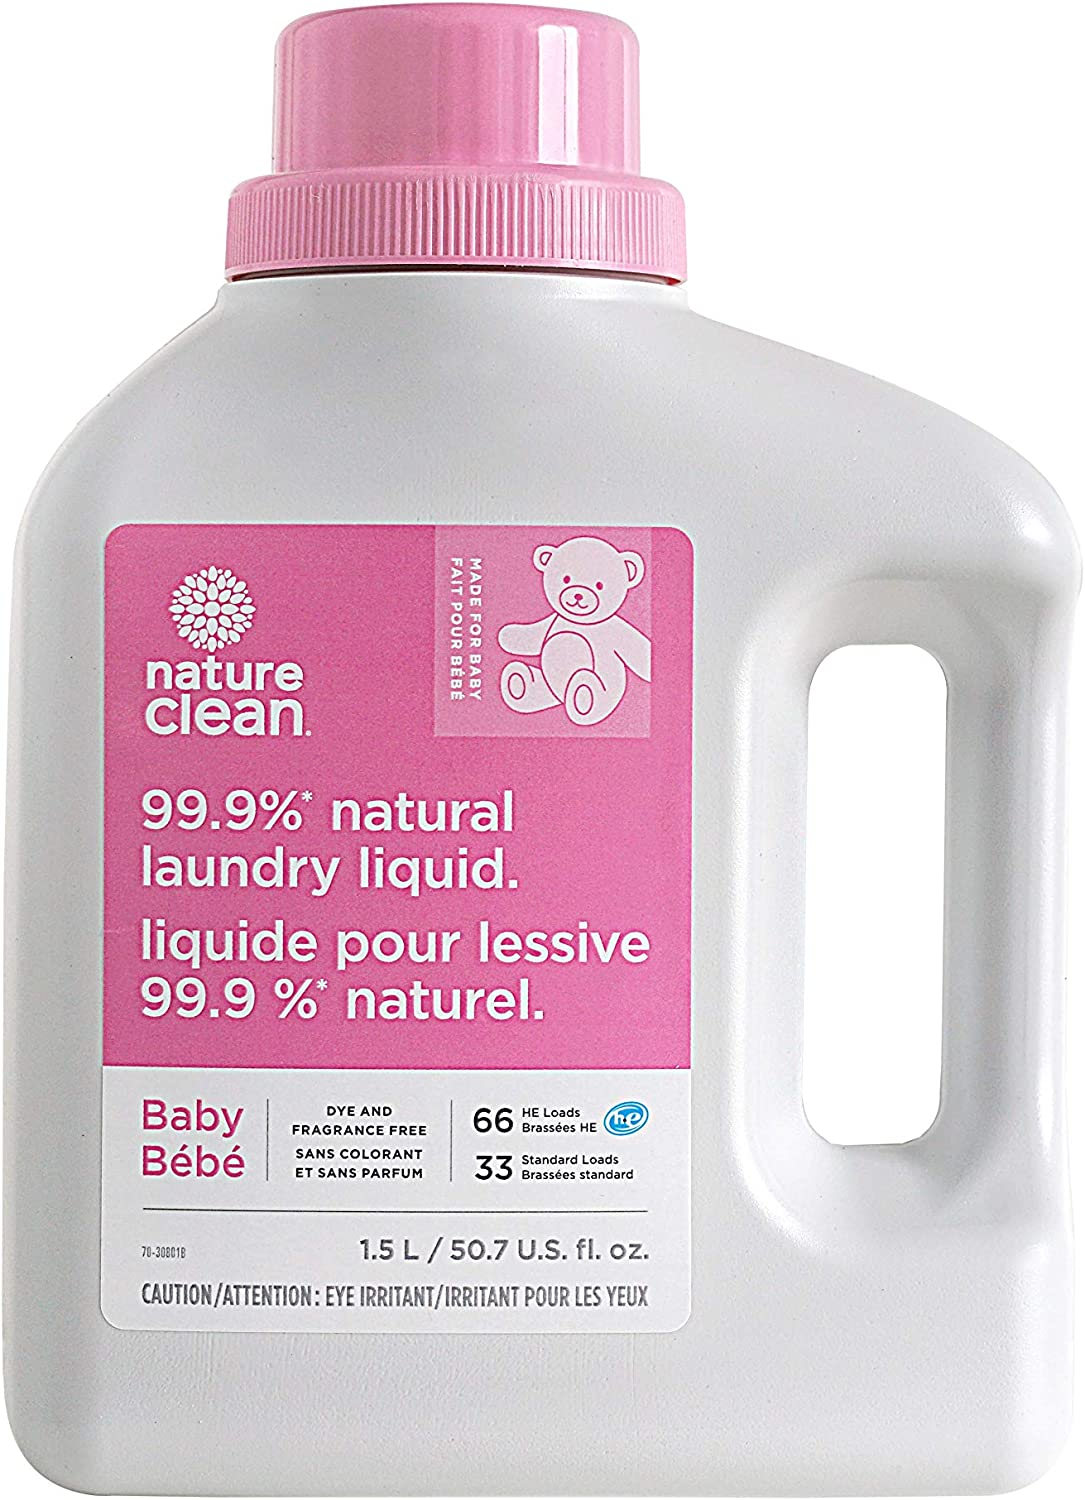 Nature Clean Baby Laundry Fragrance-Free, 50.7 Fluid Ounce